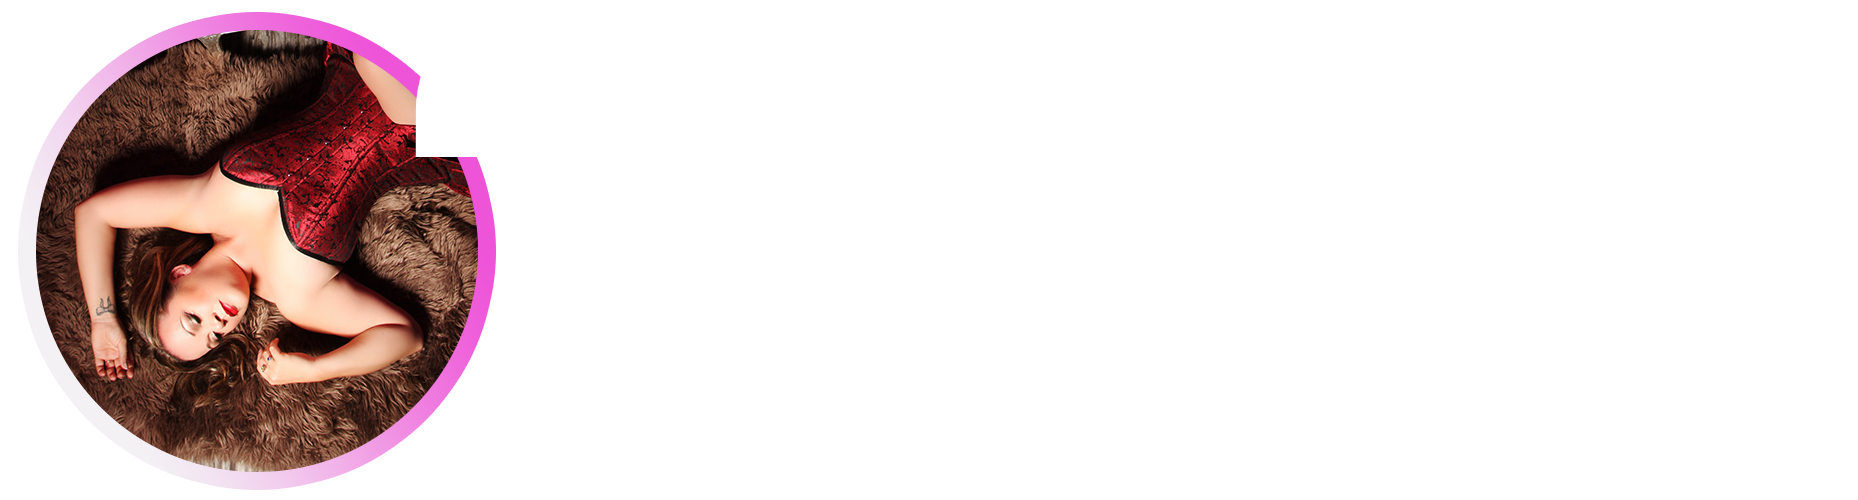 Jeanie Review 1.png